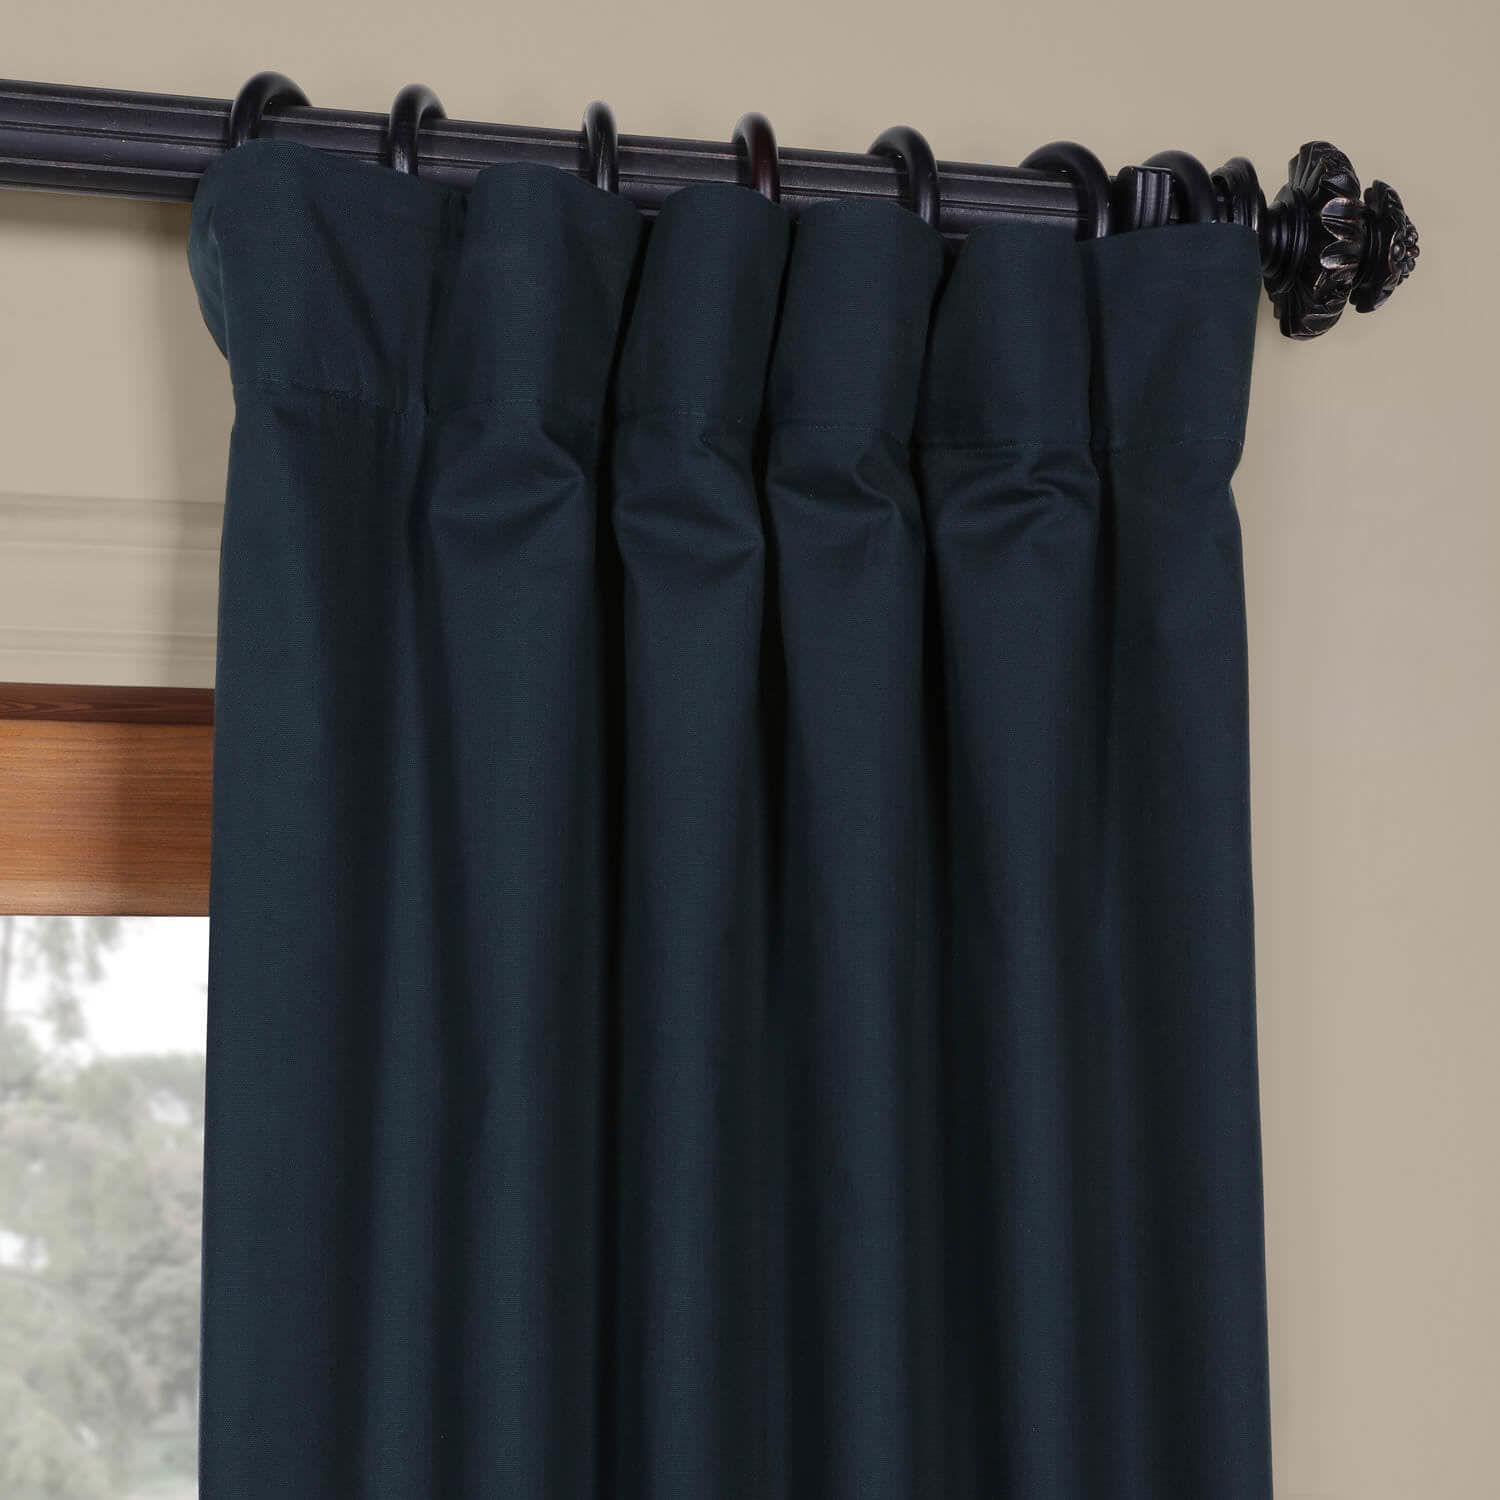 Polo Navy Solid Cotton Blackout Curtain | Дом In 2019 With Regard To Solid Cotton True Blackout Curtain Panels (View 19 of 30)